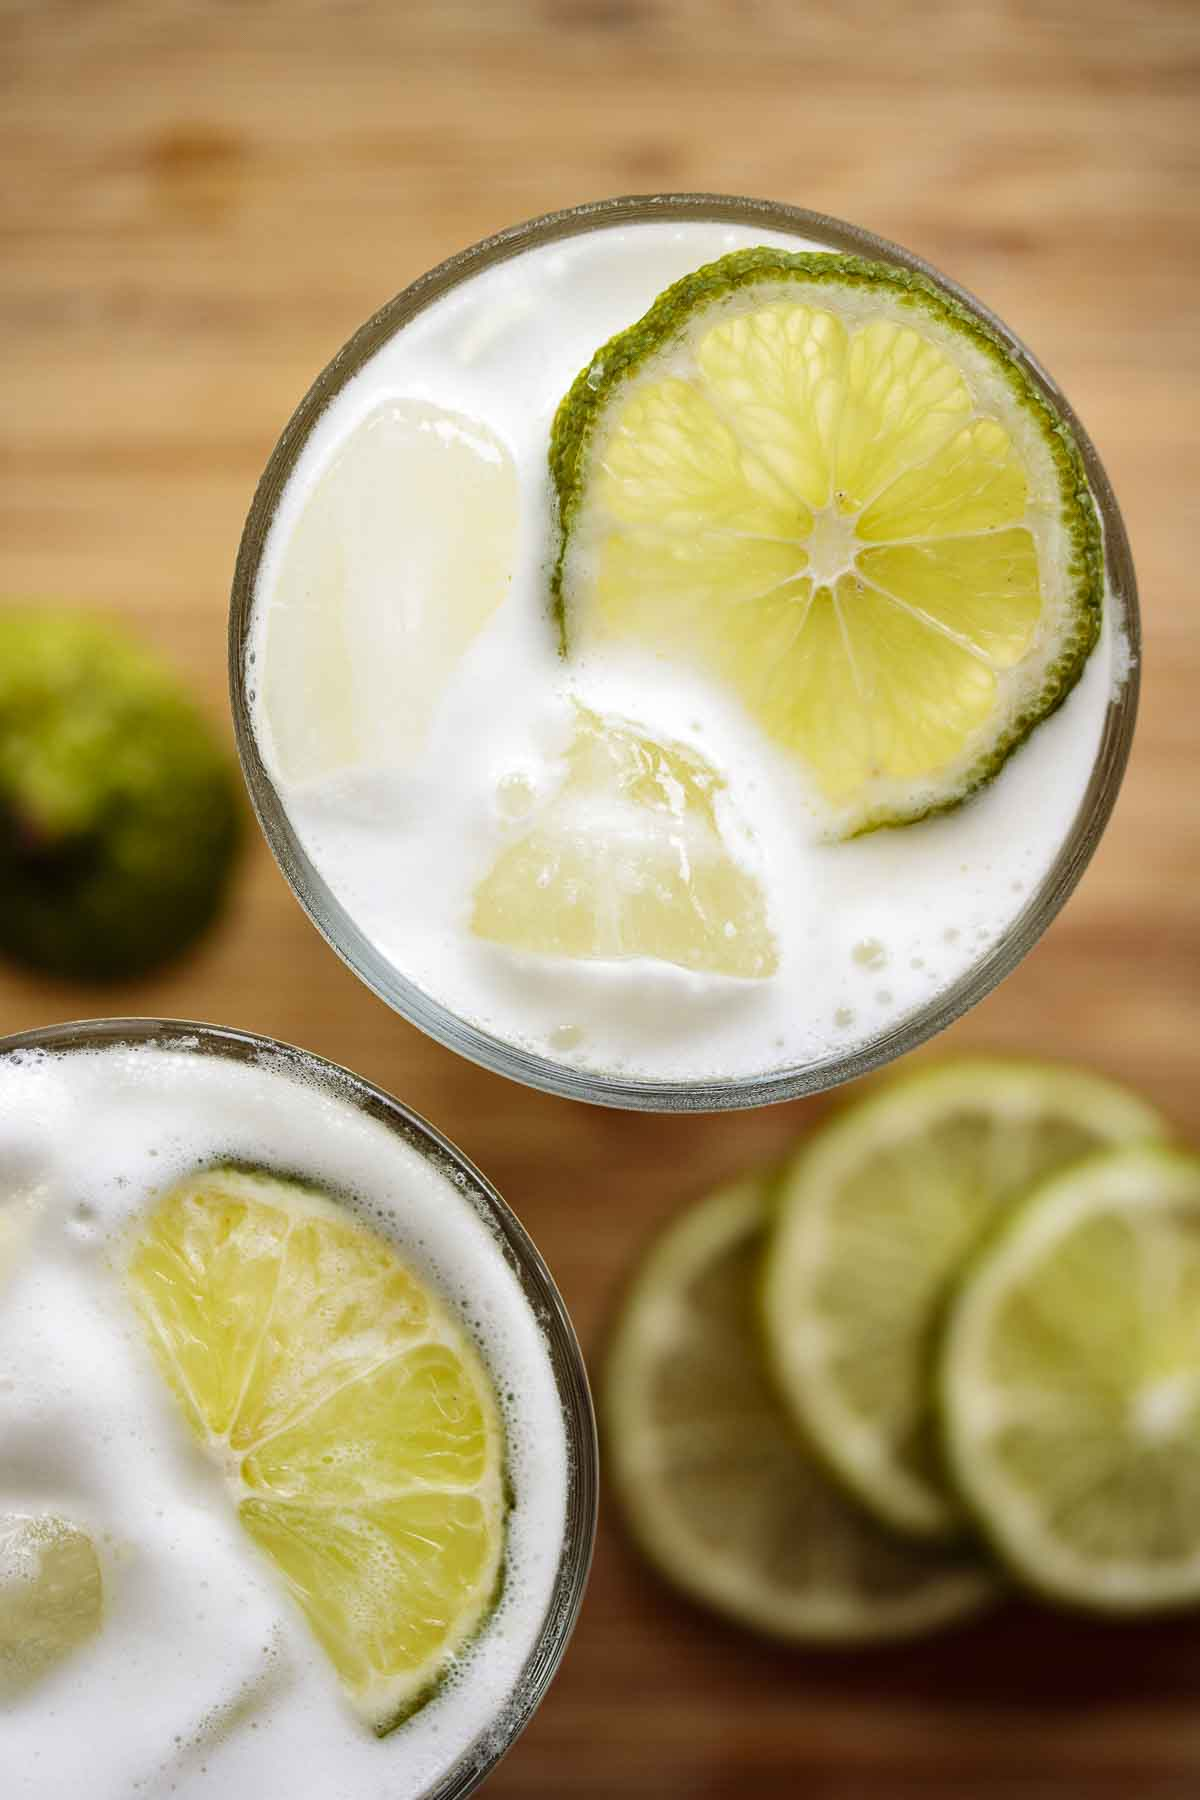 Two glasses of Brazilian limeade with lime slices.